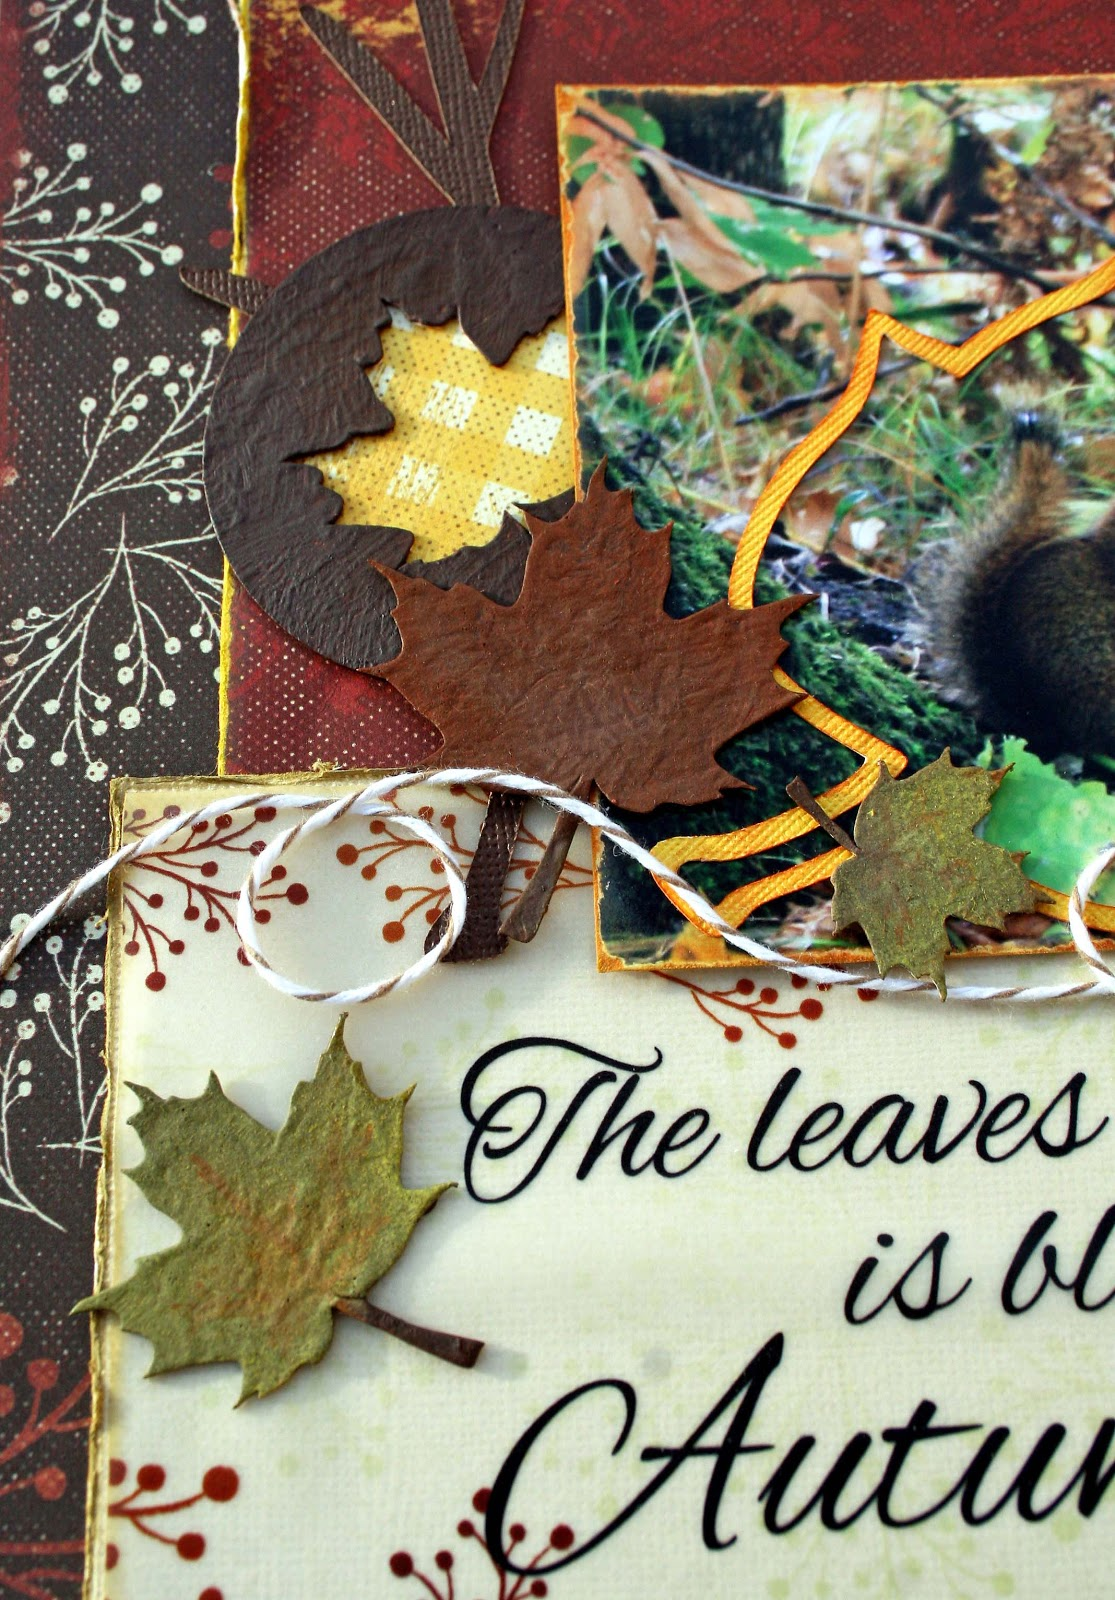 falling leaves quotes like - photo #17